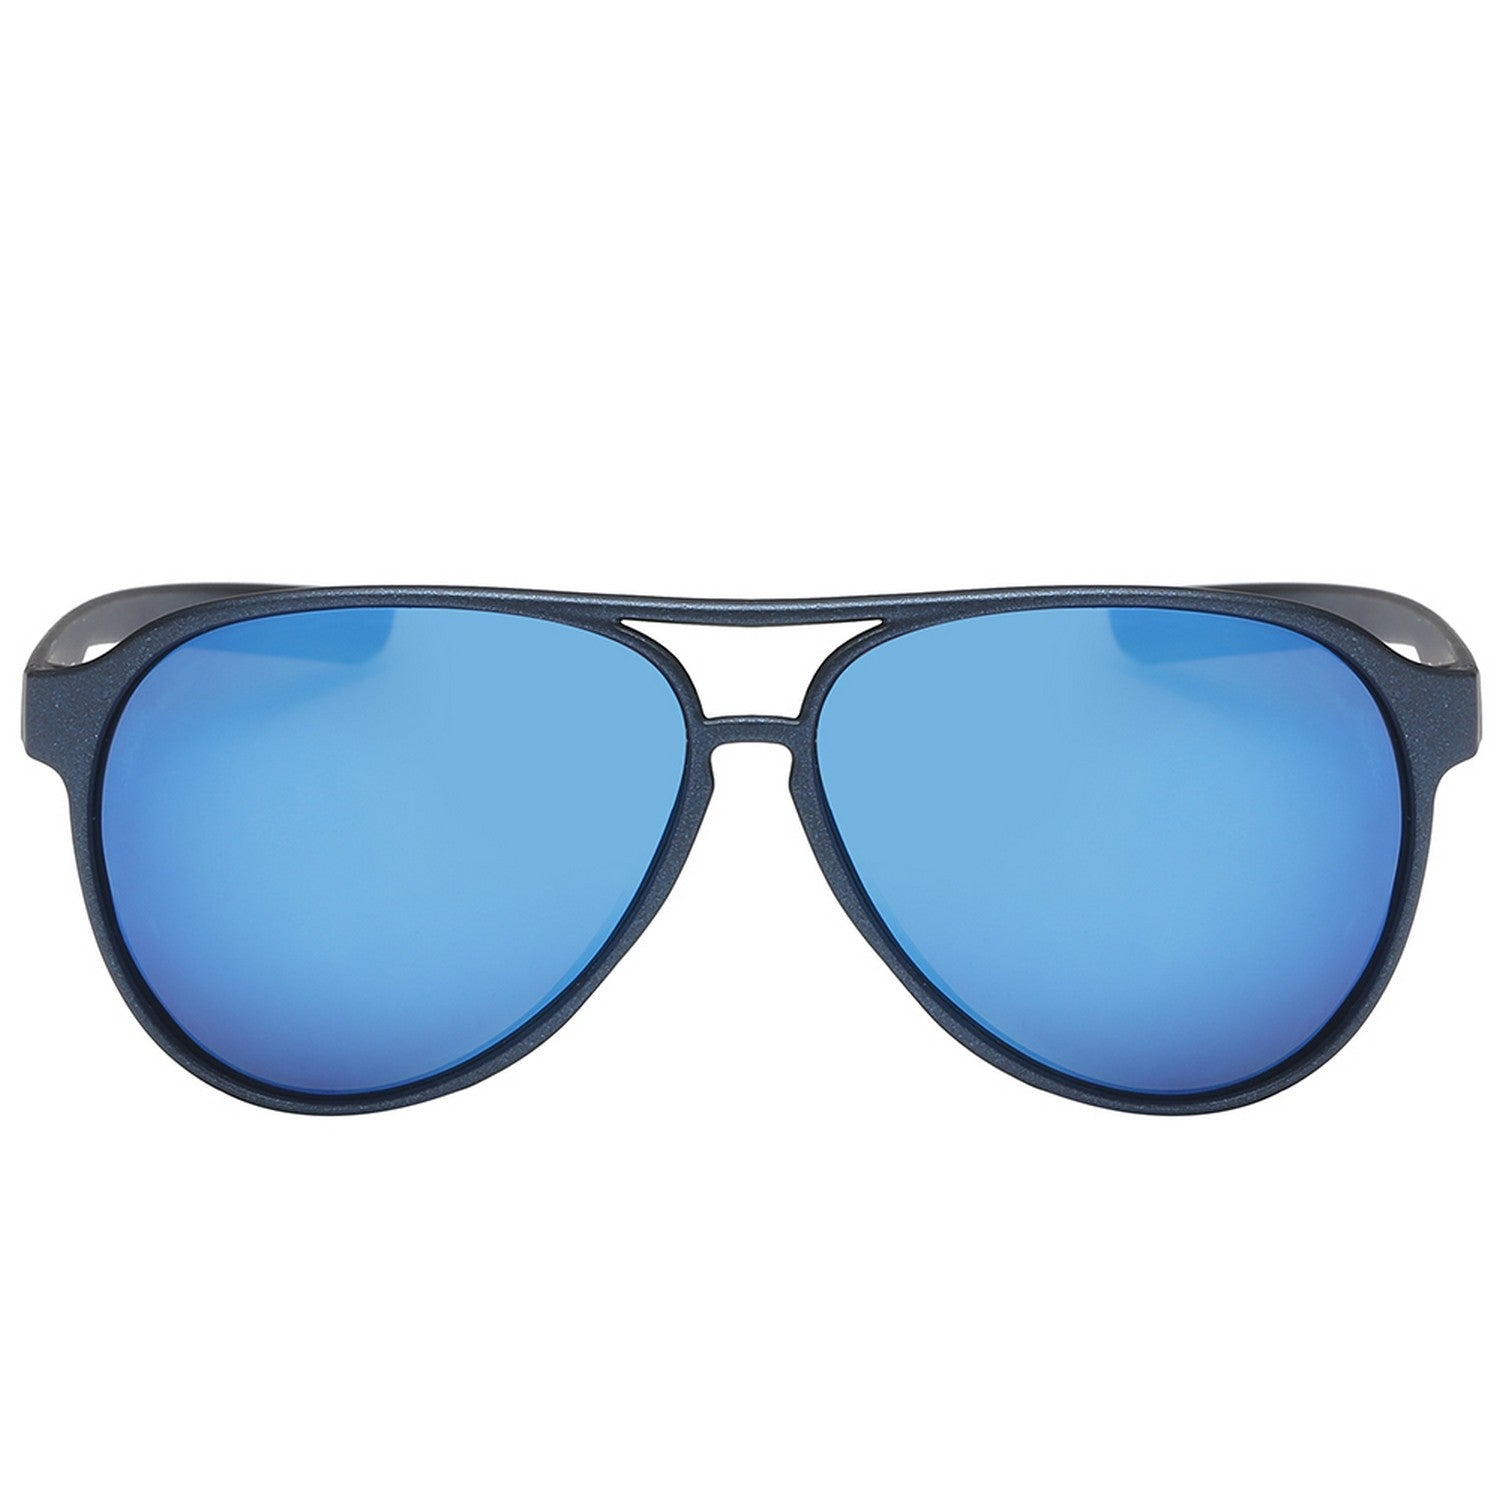 Polarspex Polarized Classic Ultar Lightweight Aviator Pilot Sunglasses with Titanium Navy Frames and Polarized Ice Blue Lenses for Men and Women